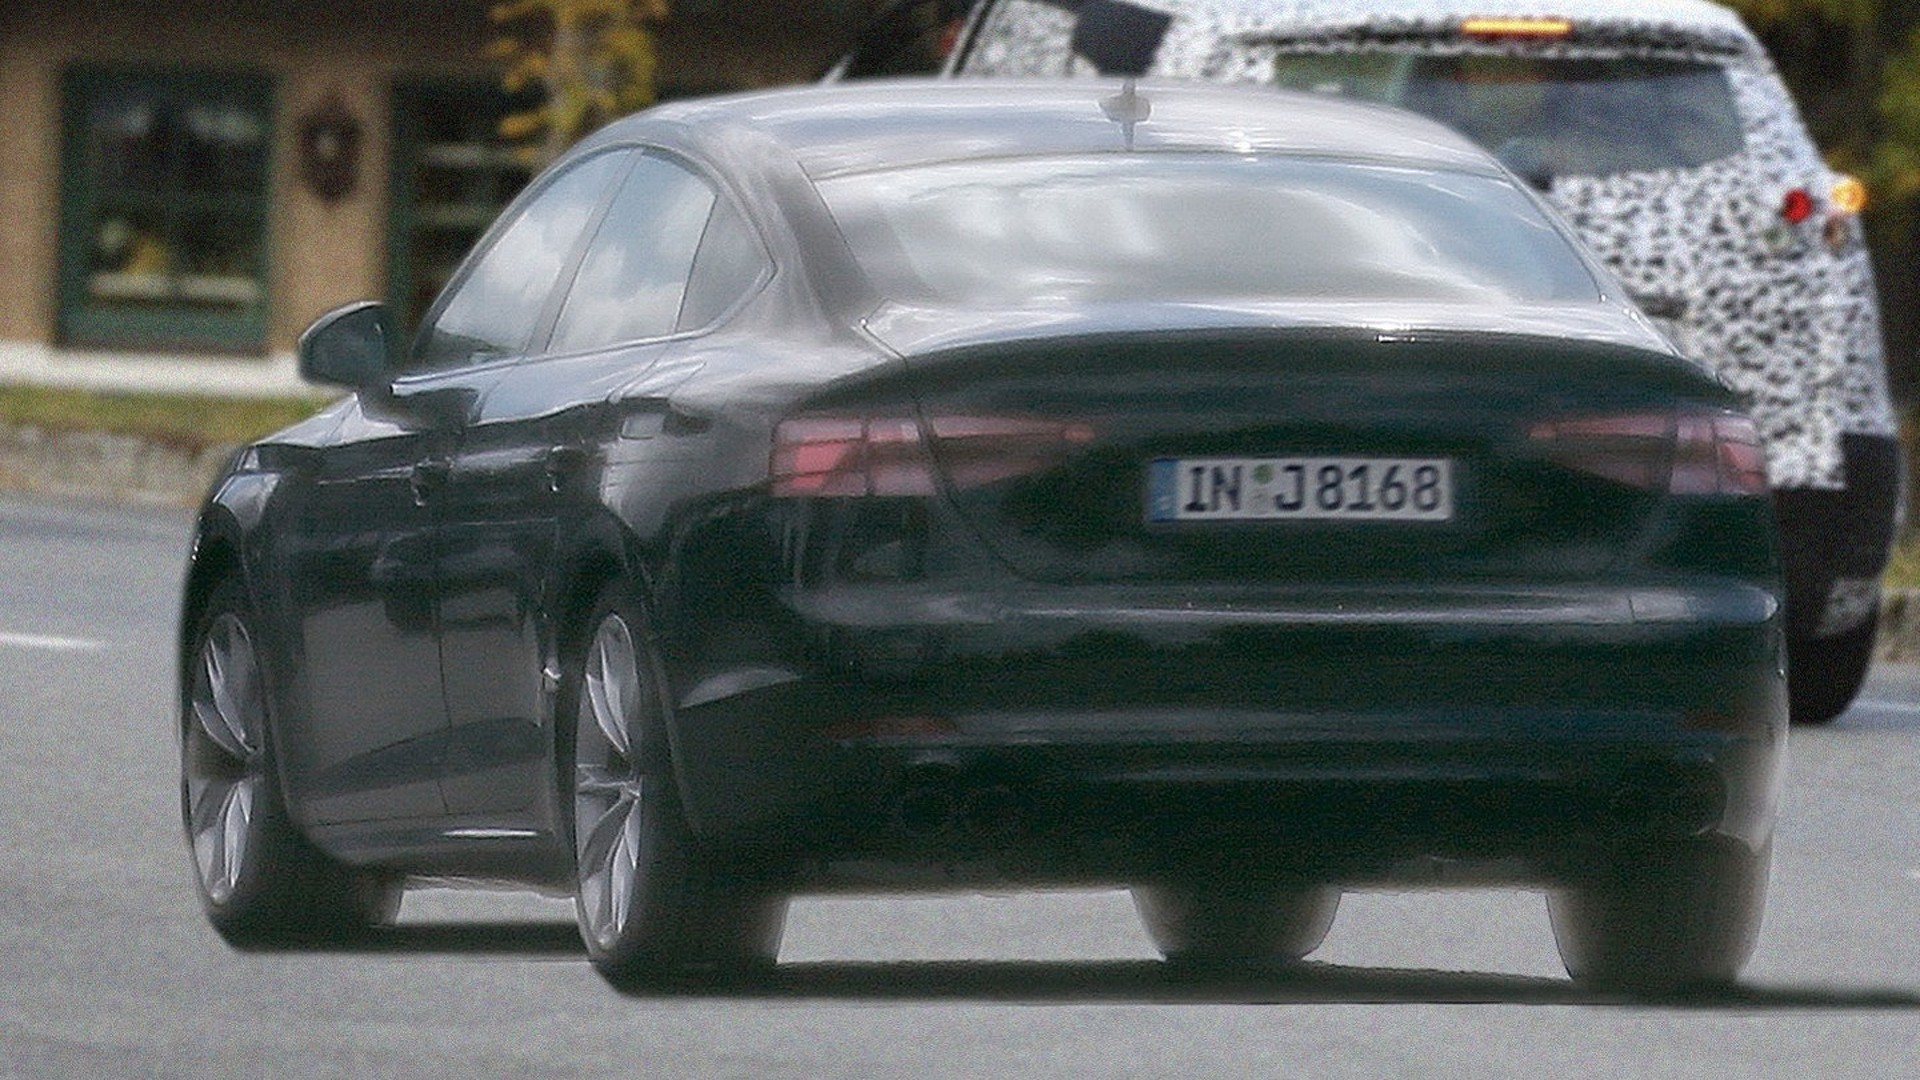 2017 Audi A4 Sedan Spy Photos News Car And Driver | Autos Post